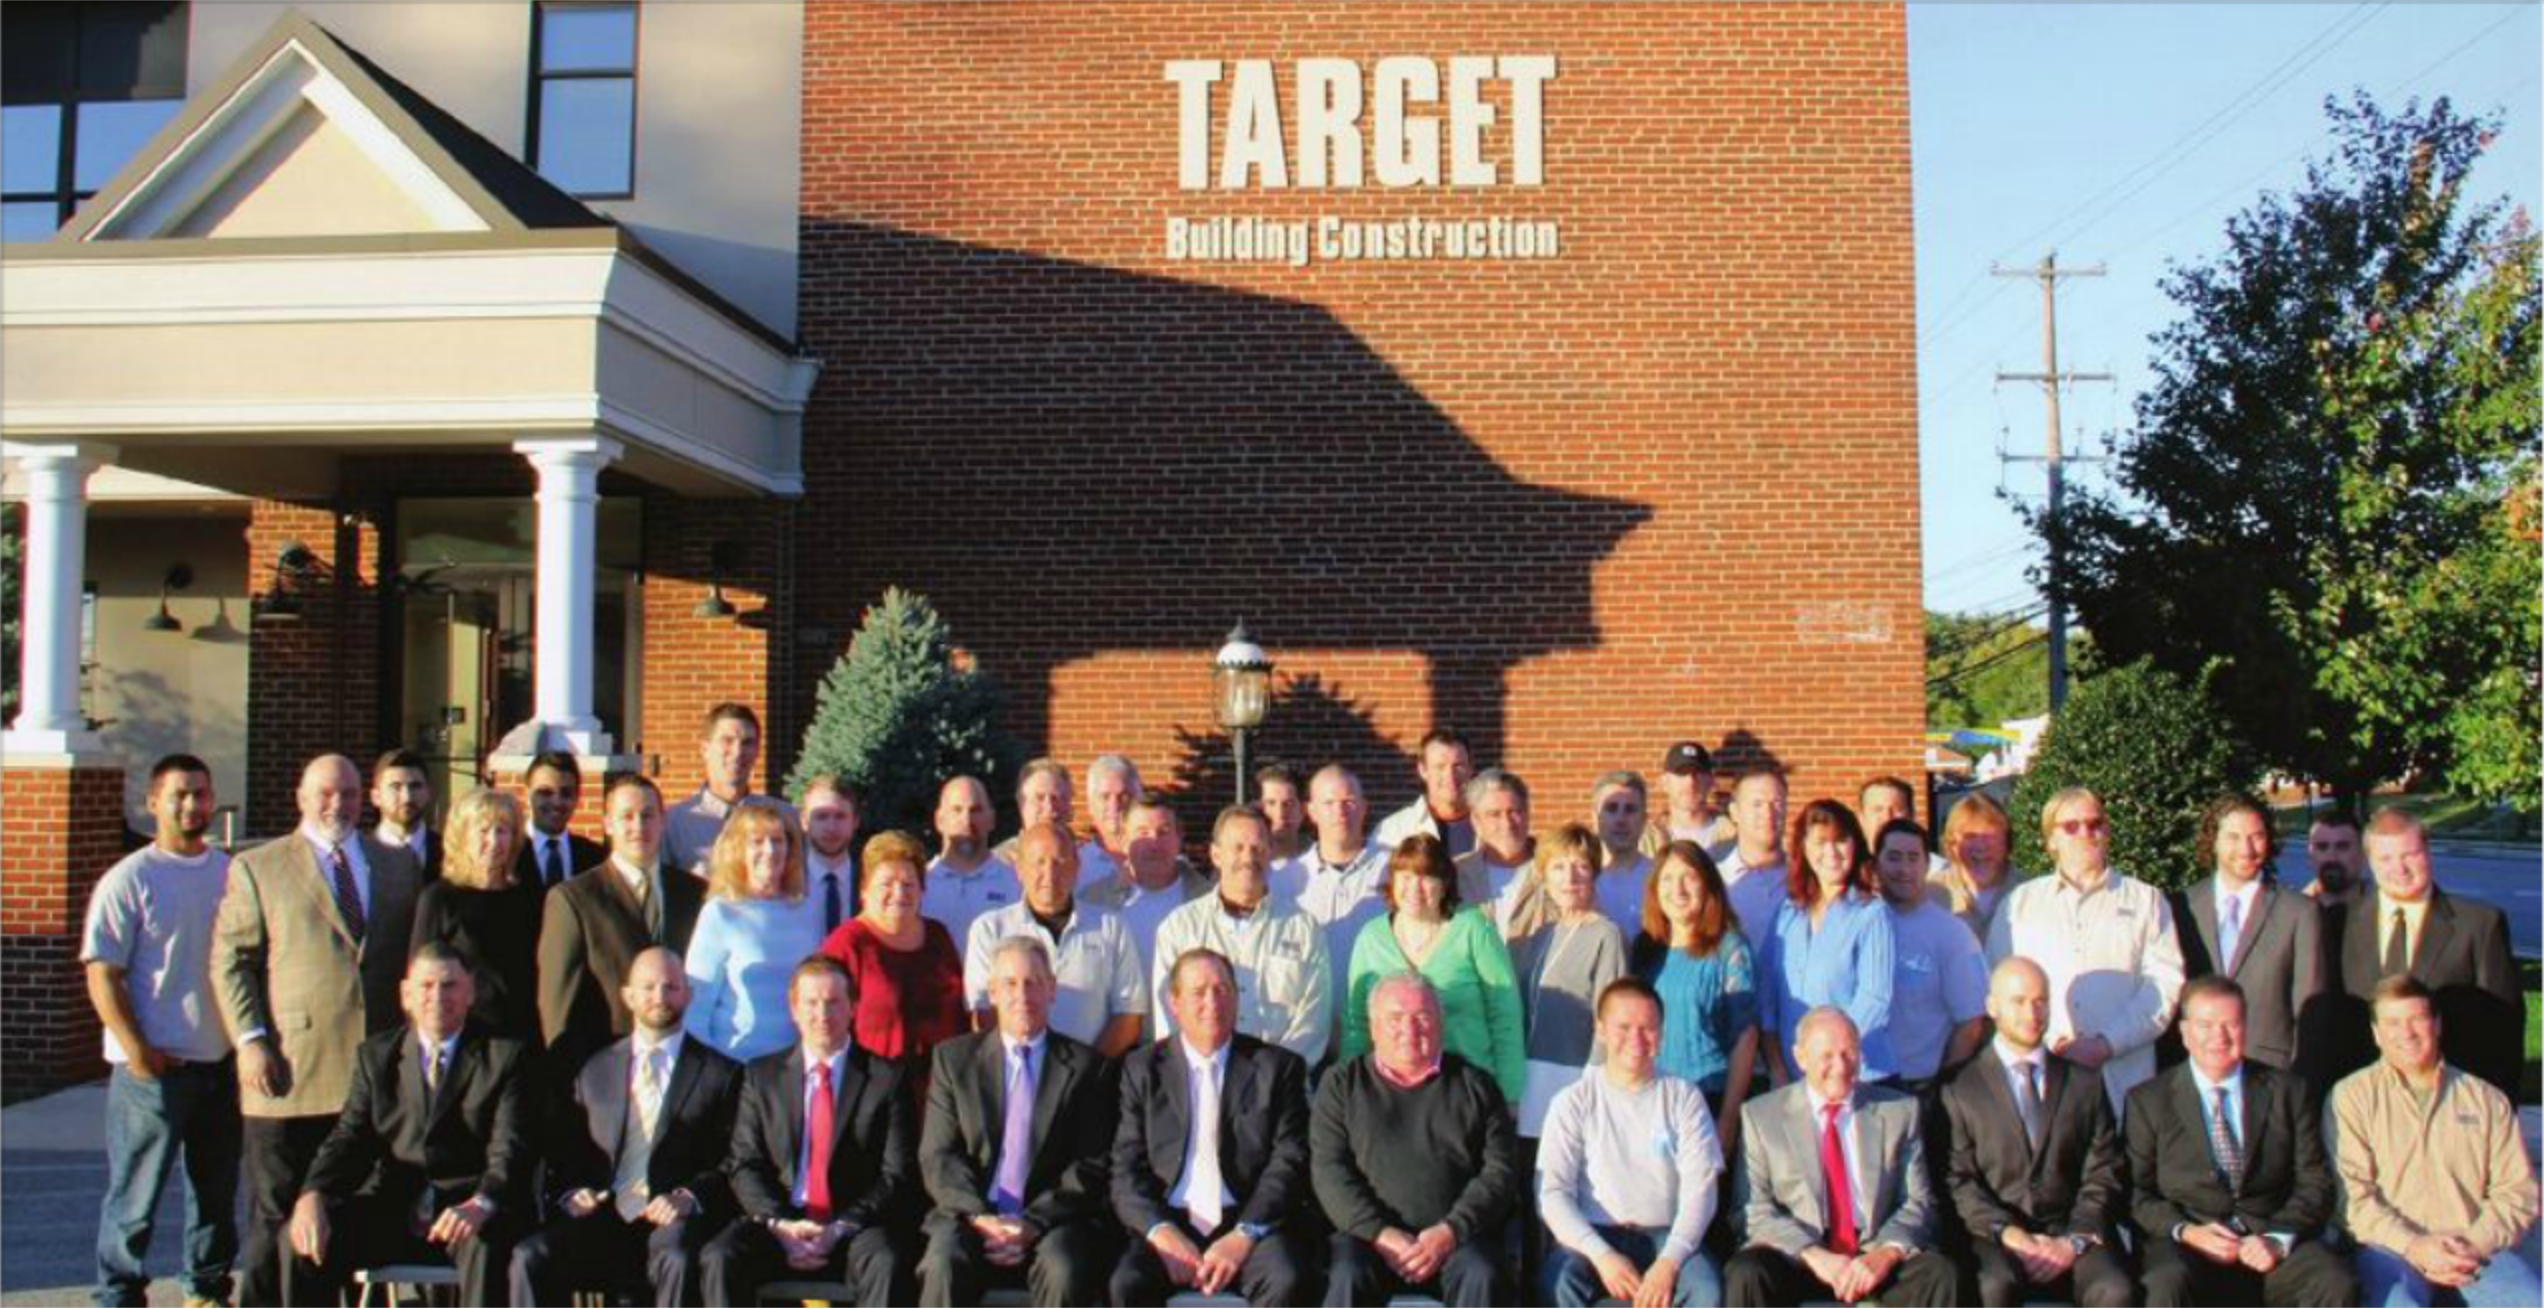 Target Building Construction Celebrating 25 Years: The heart of any business, the essential element that ensures success in the complex world of construction, is relationships.